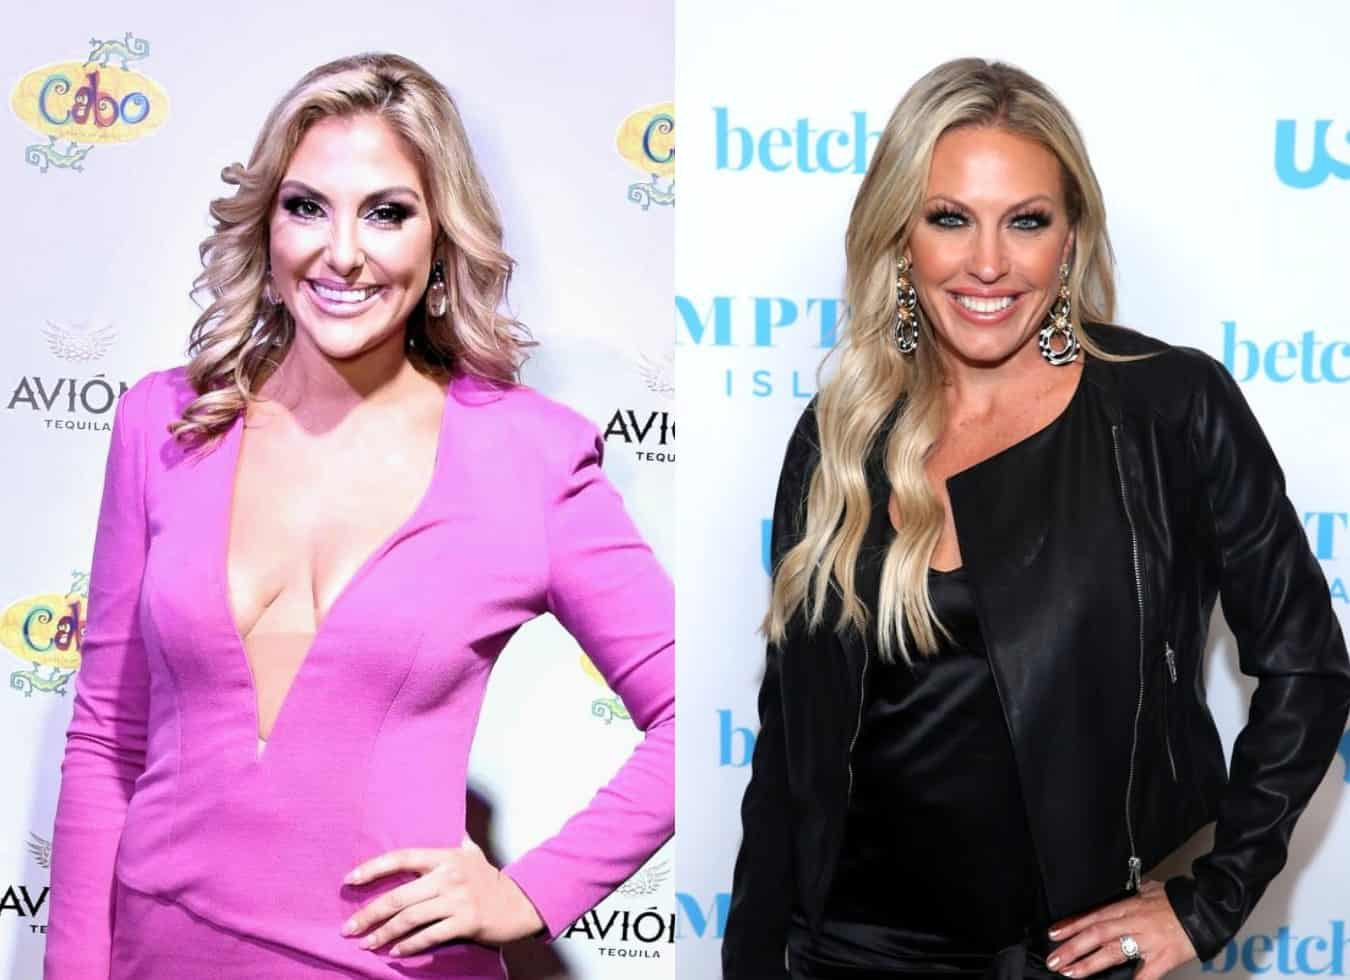 "RHOC Star Gina Kirschenheiter Explains Why She's No Longer Friends With Braunwyn Windham-Burke and Denies it Has to Do With Her Sobriety, Reacts to Her Potential Exit From Show and Says Vicki and Tamra's Exits Were ""Needed"""